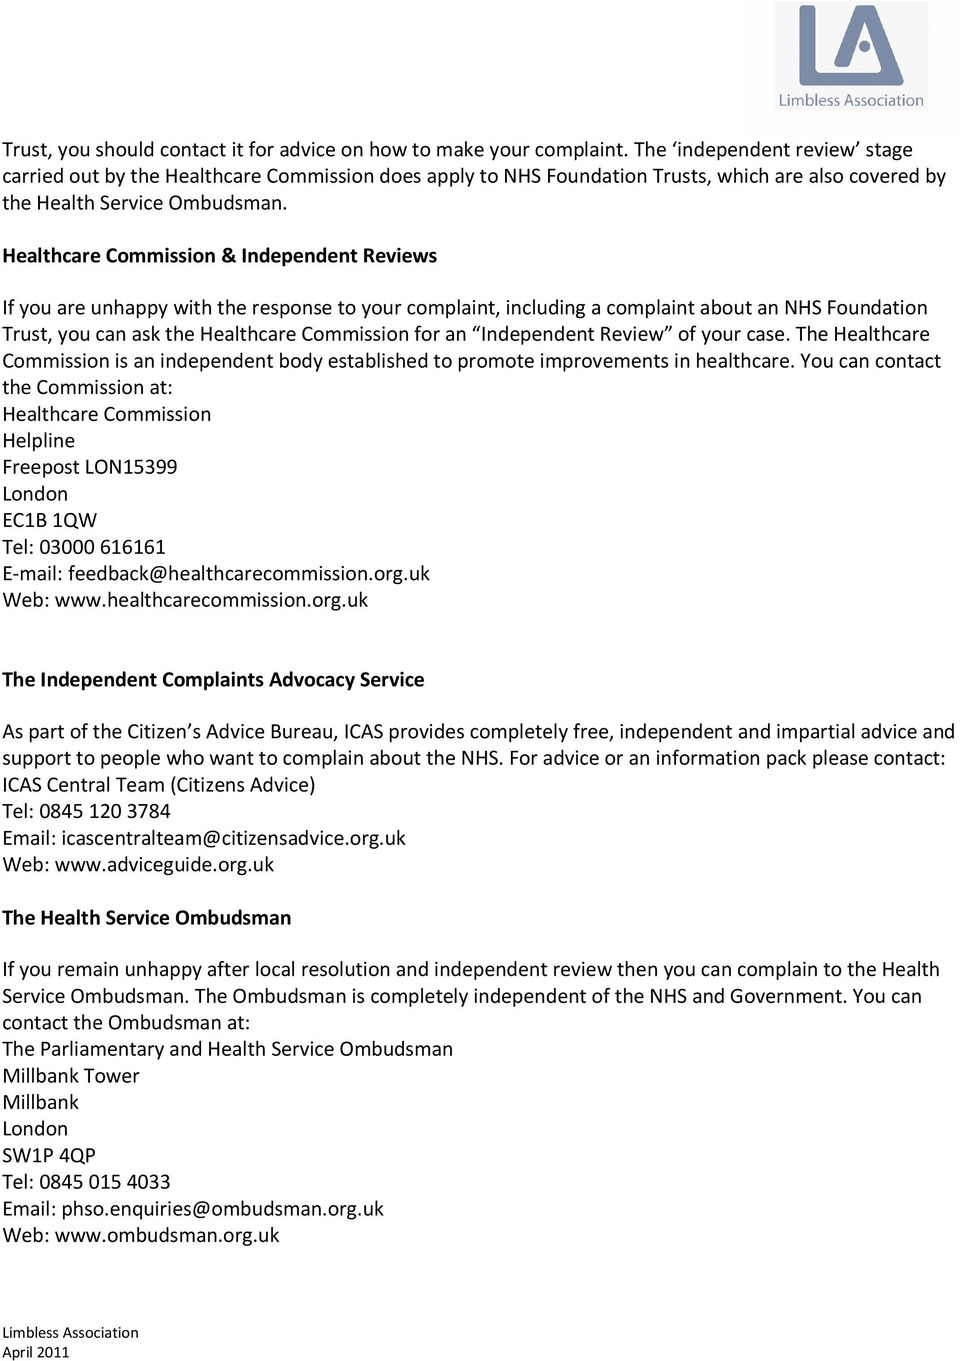 Healthcare Commission & Independent Reviews If you are unhappy with the response to your complaint, including a complaint about an NHS Foundation Trust, you can ask the Healthcare Commission for an